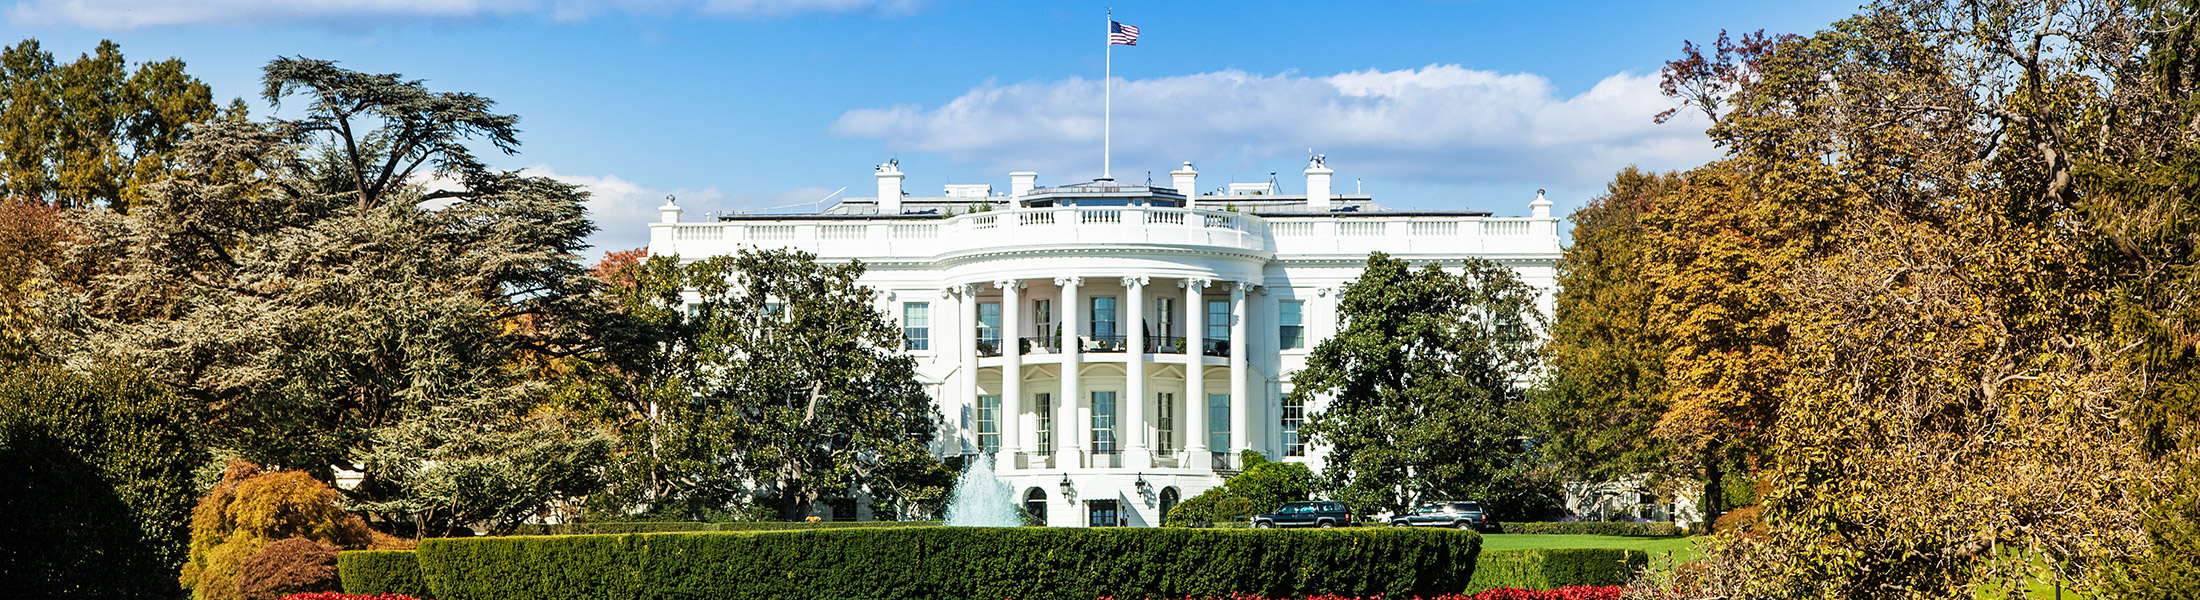 The White House in North America